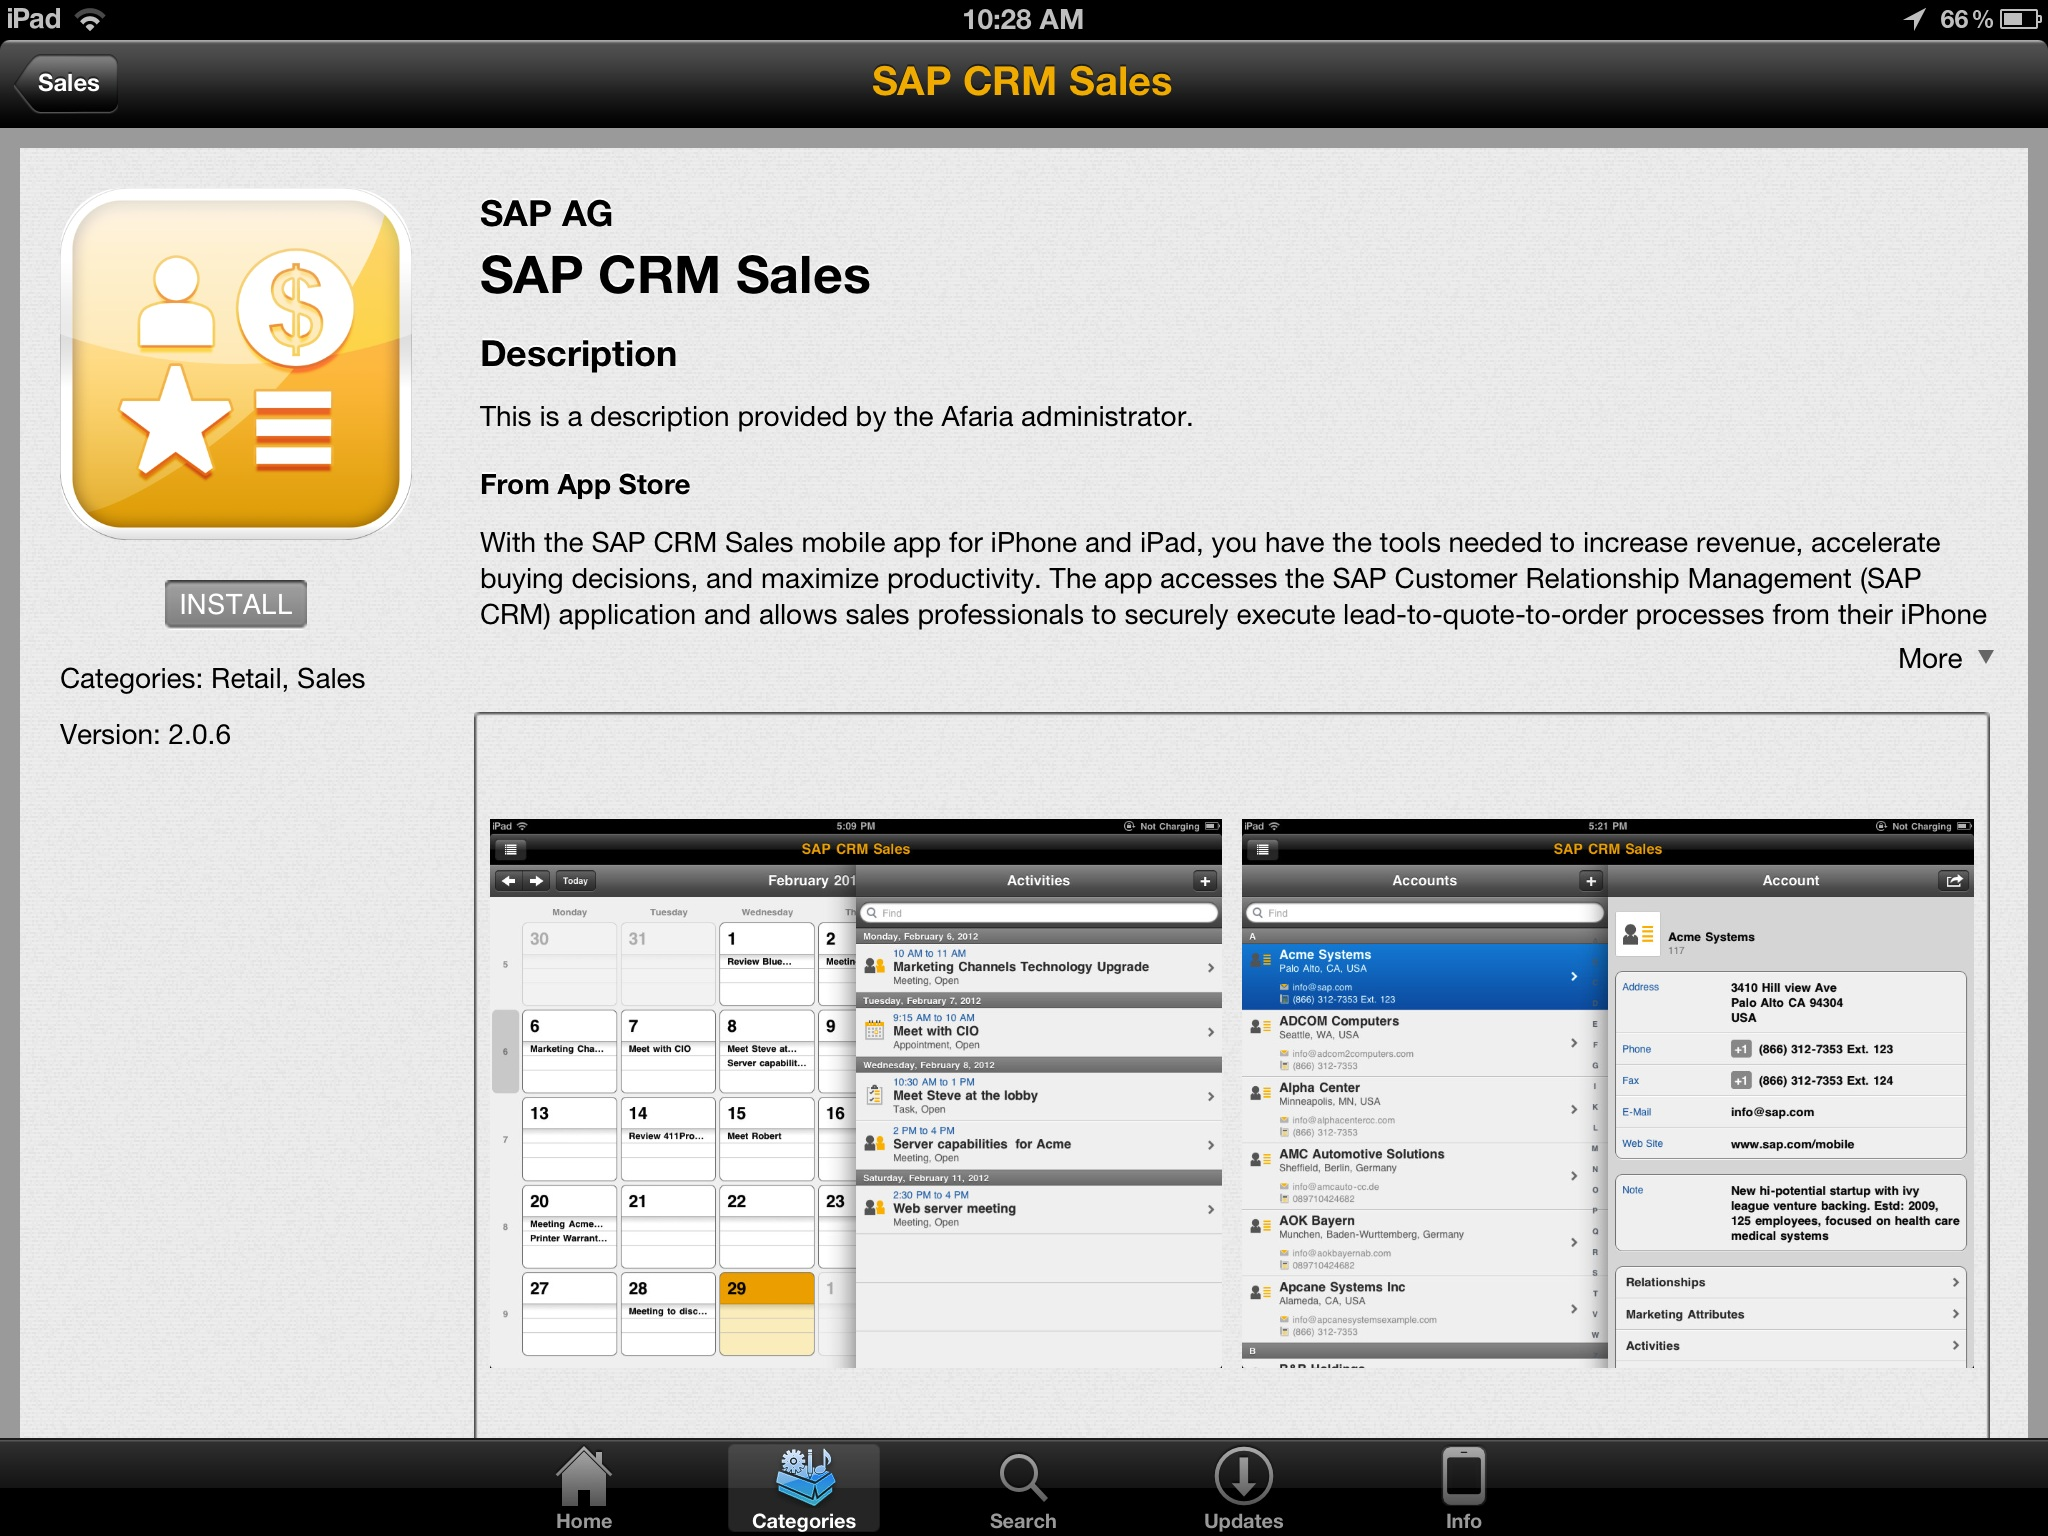 SAP announces major update to Afaria Mobile Device